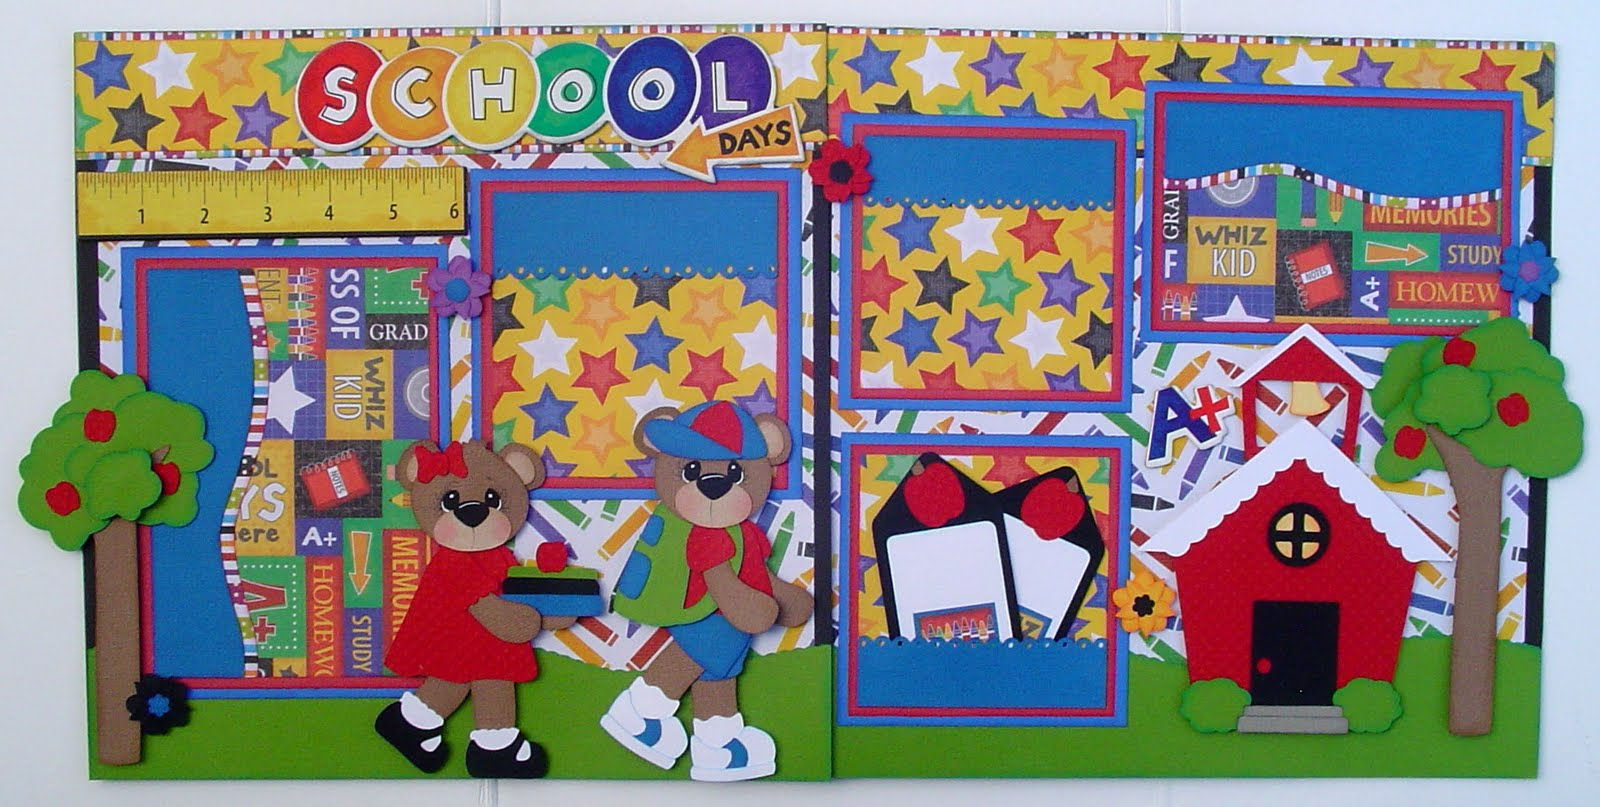 How to make scrapbook for school project - Precious In His Sight And School Days